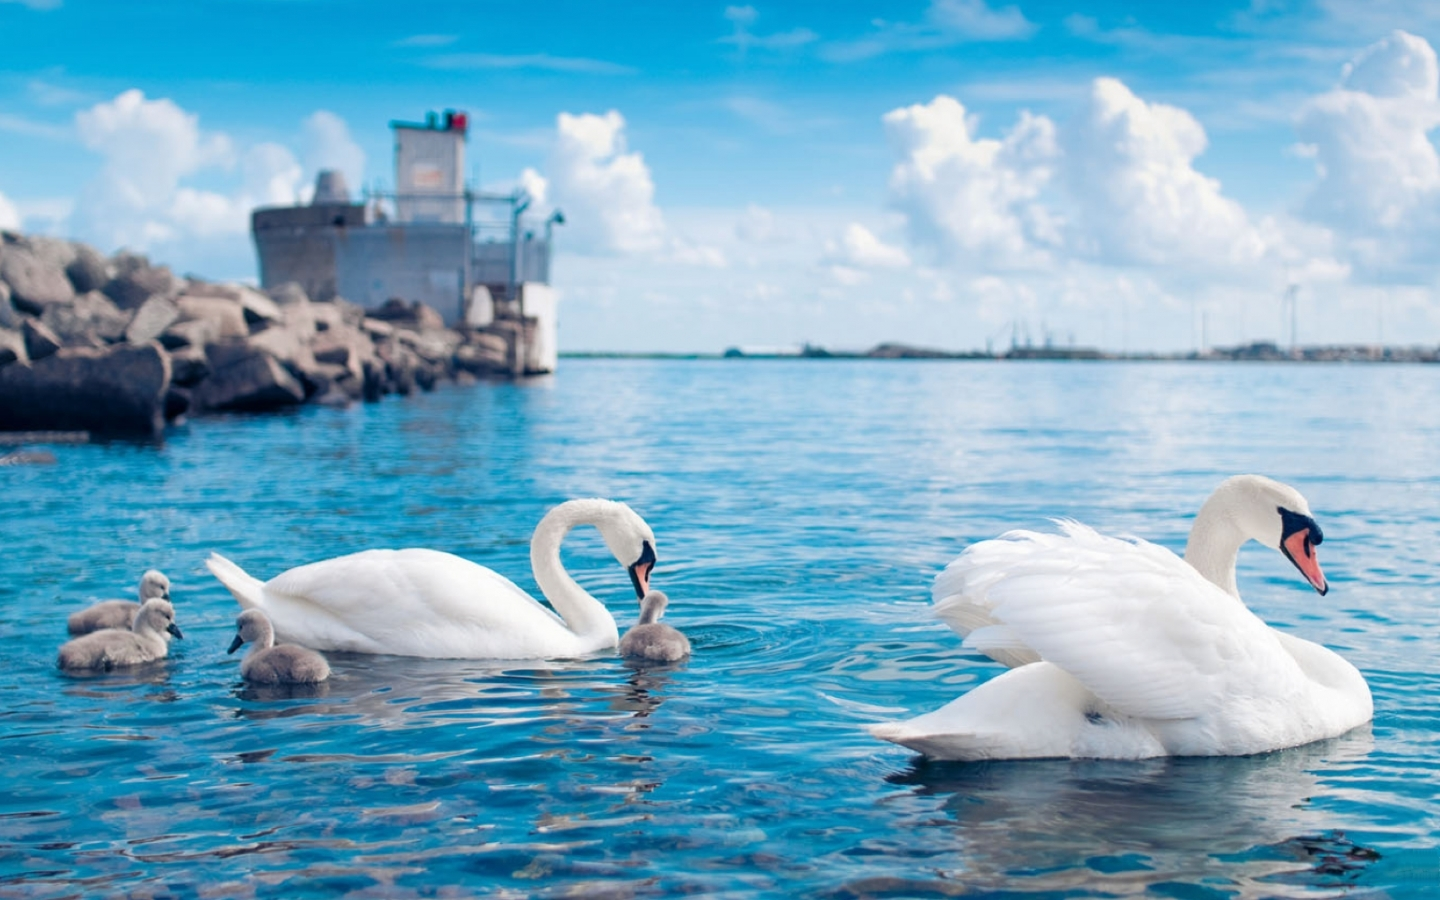 28547 download wallpaper Animals, Birds, Swans screensavers and pictures for free